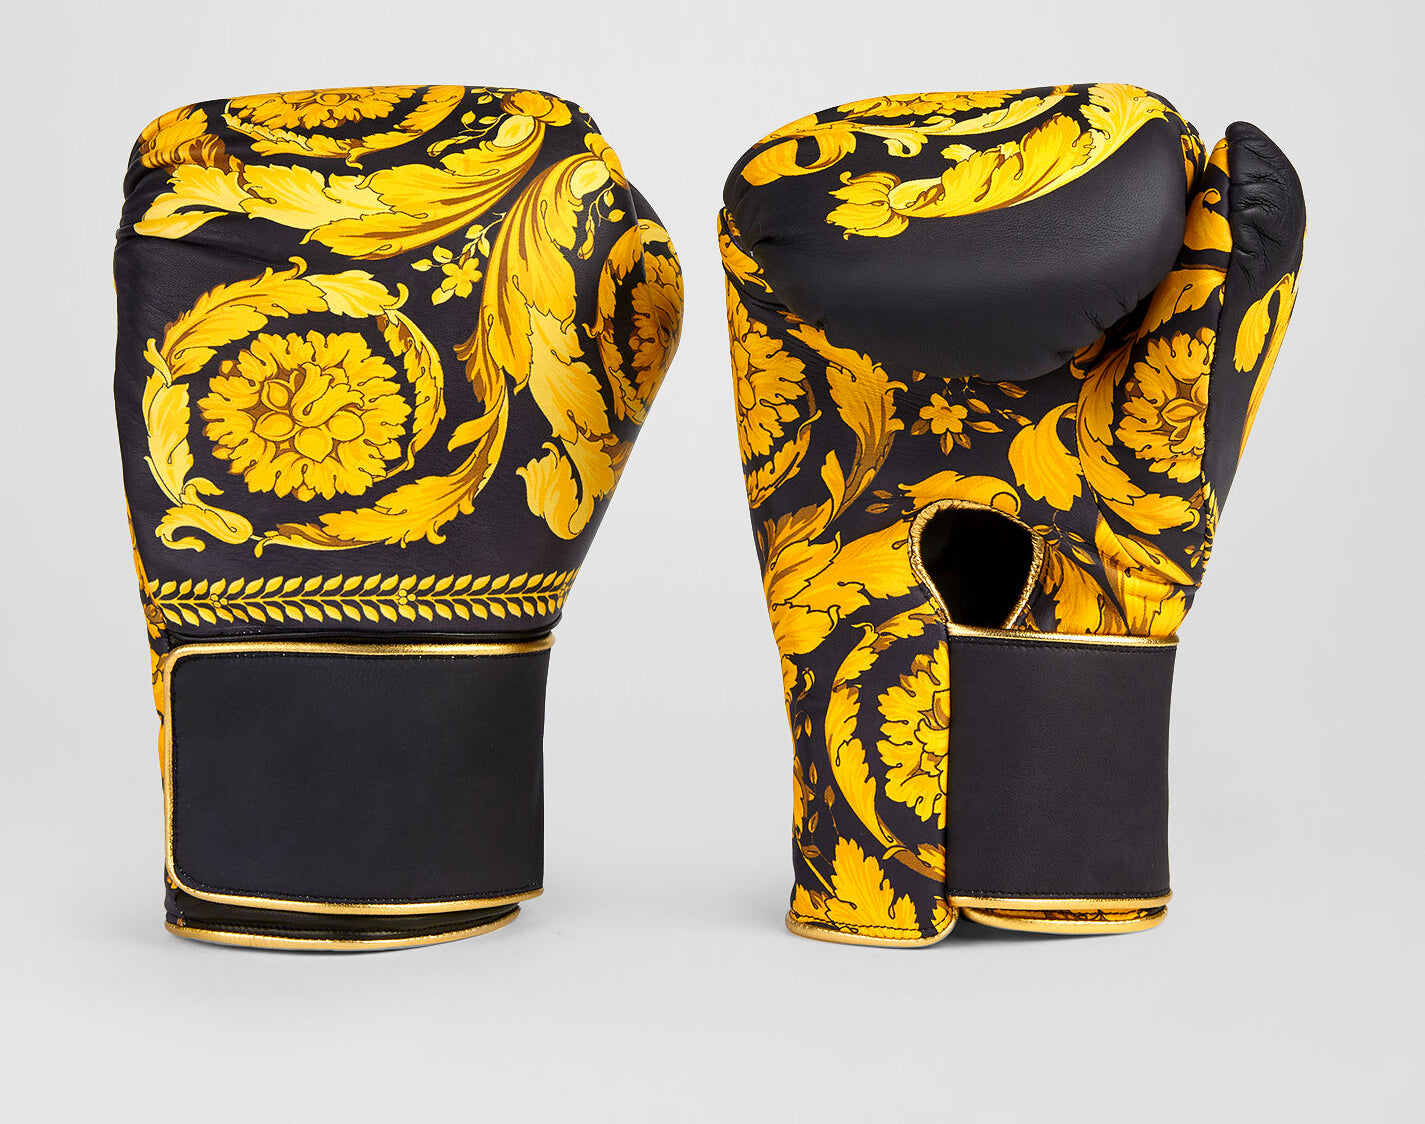 These $3,200 Versace Boxing Gloves Are An Instant Collectible